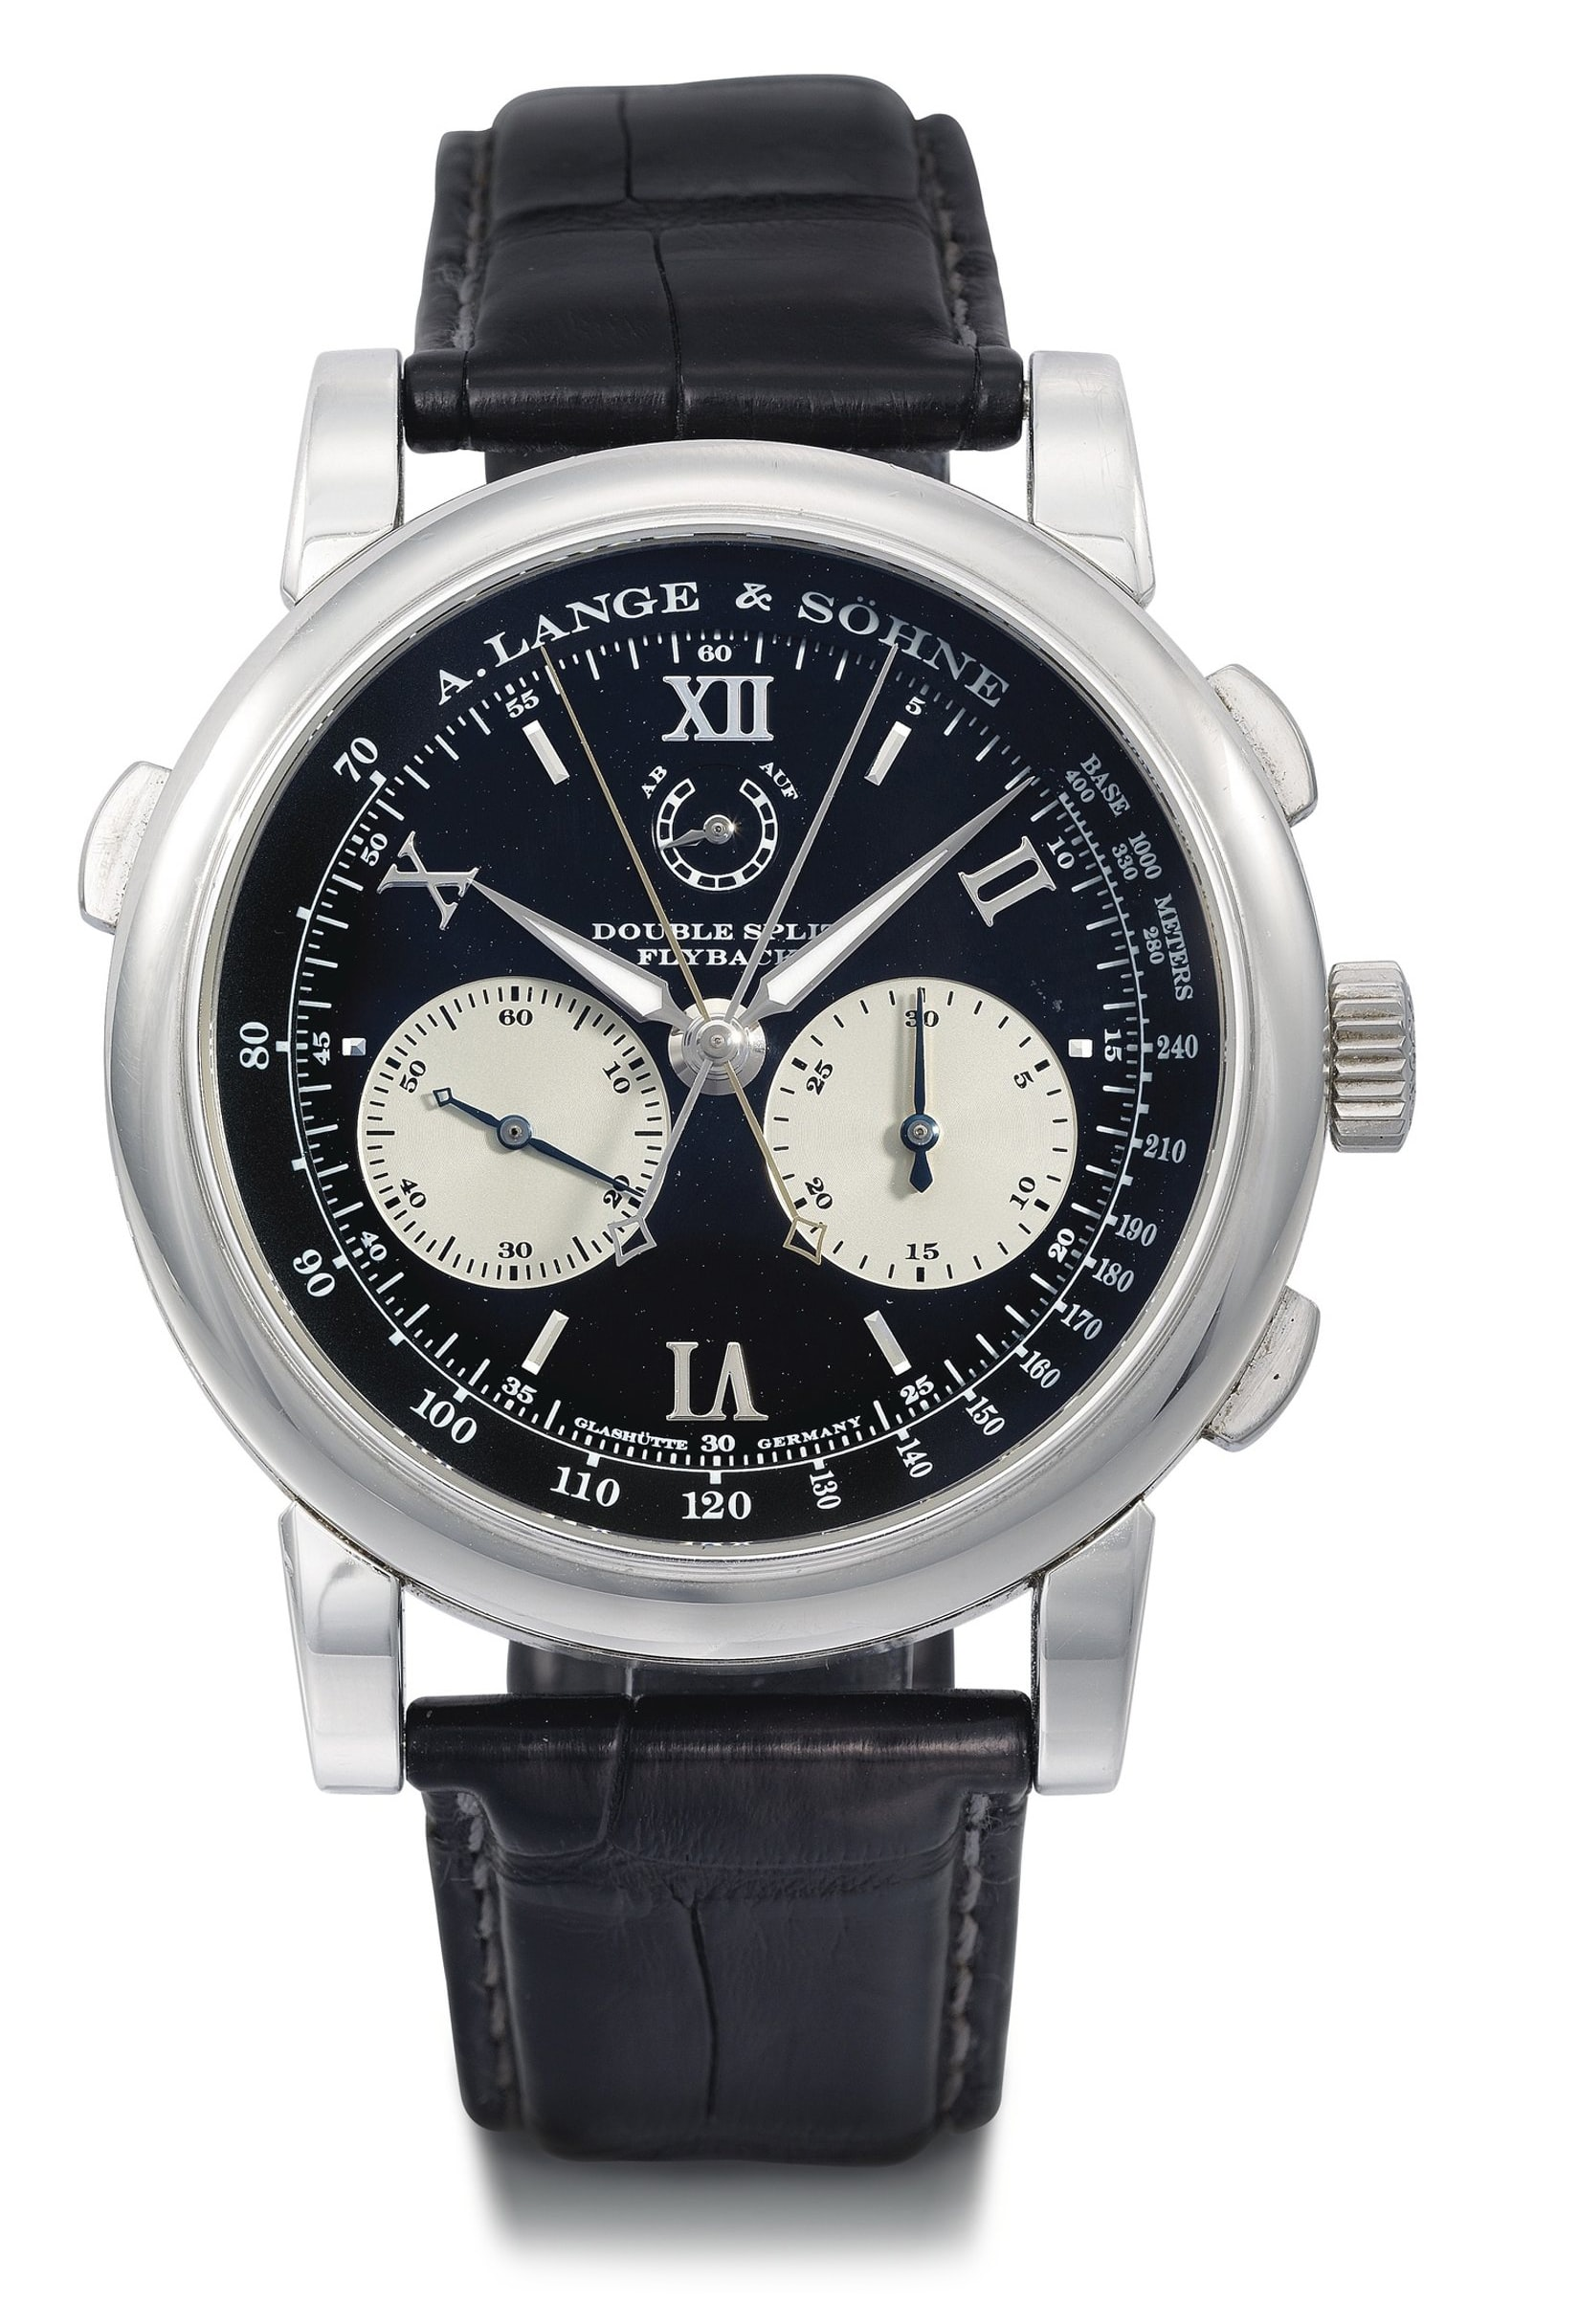 The only known Double-Split in steel brought $501,000 in 2013. Breaking News: Christie's To Offer Mega Rare Steel Lange 1 With Black Dial In June (Live Pics, Estimates) Breaking News: Christie's To Offer Mega Rare Steel Lange 1 With Black Dial In June (Live Pics, Estimates) b